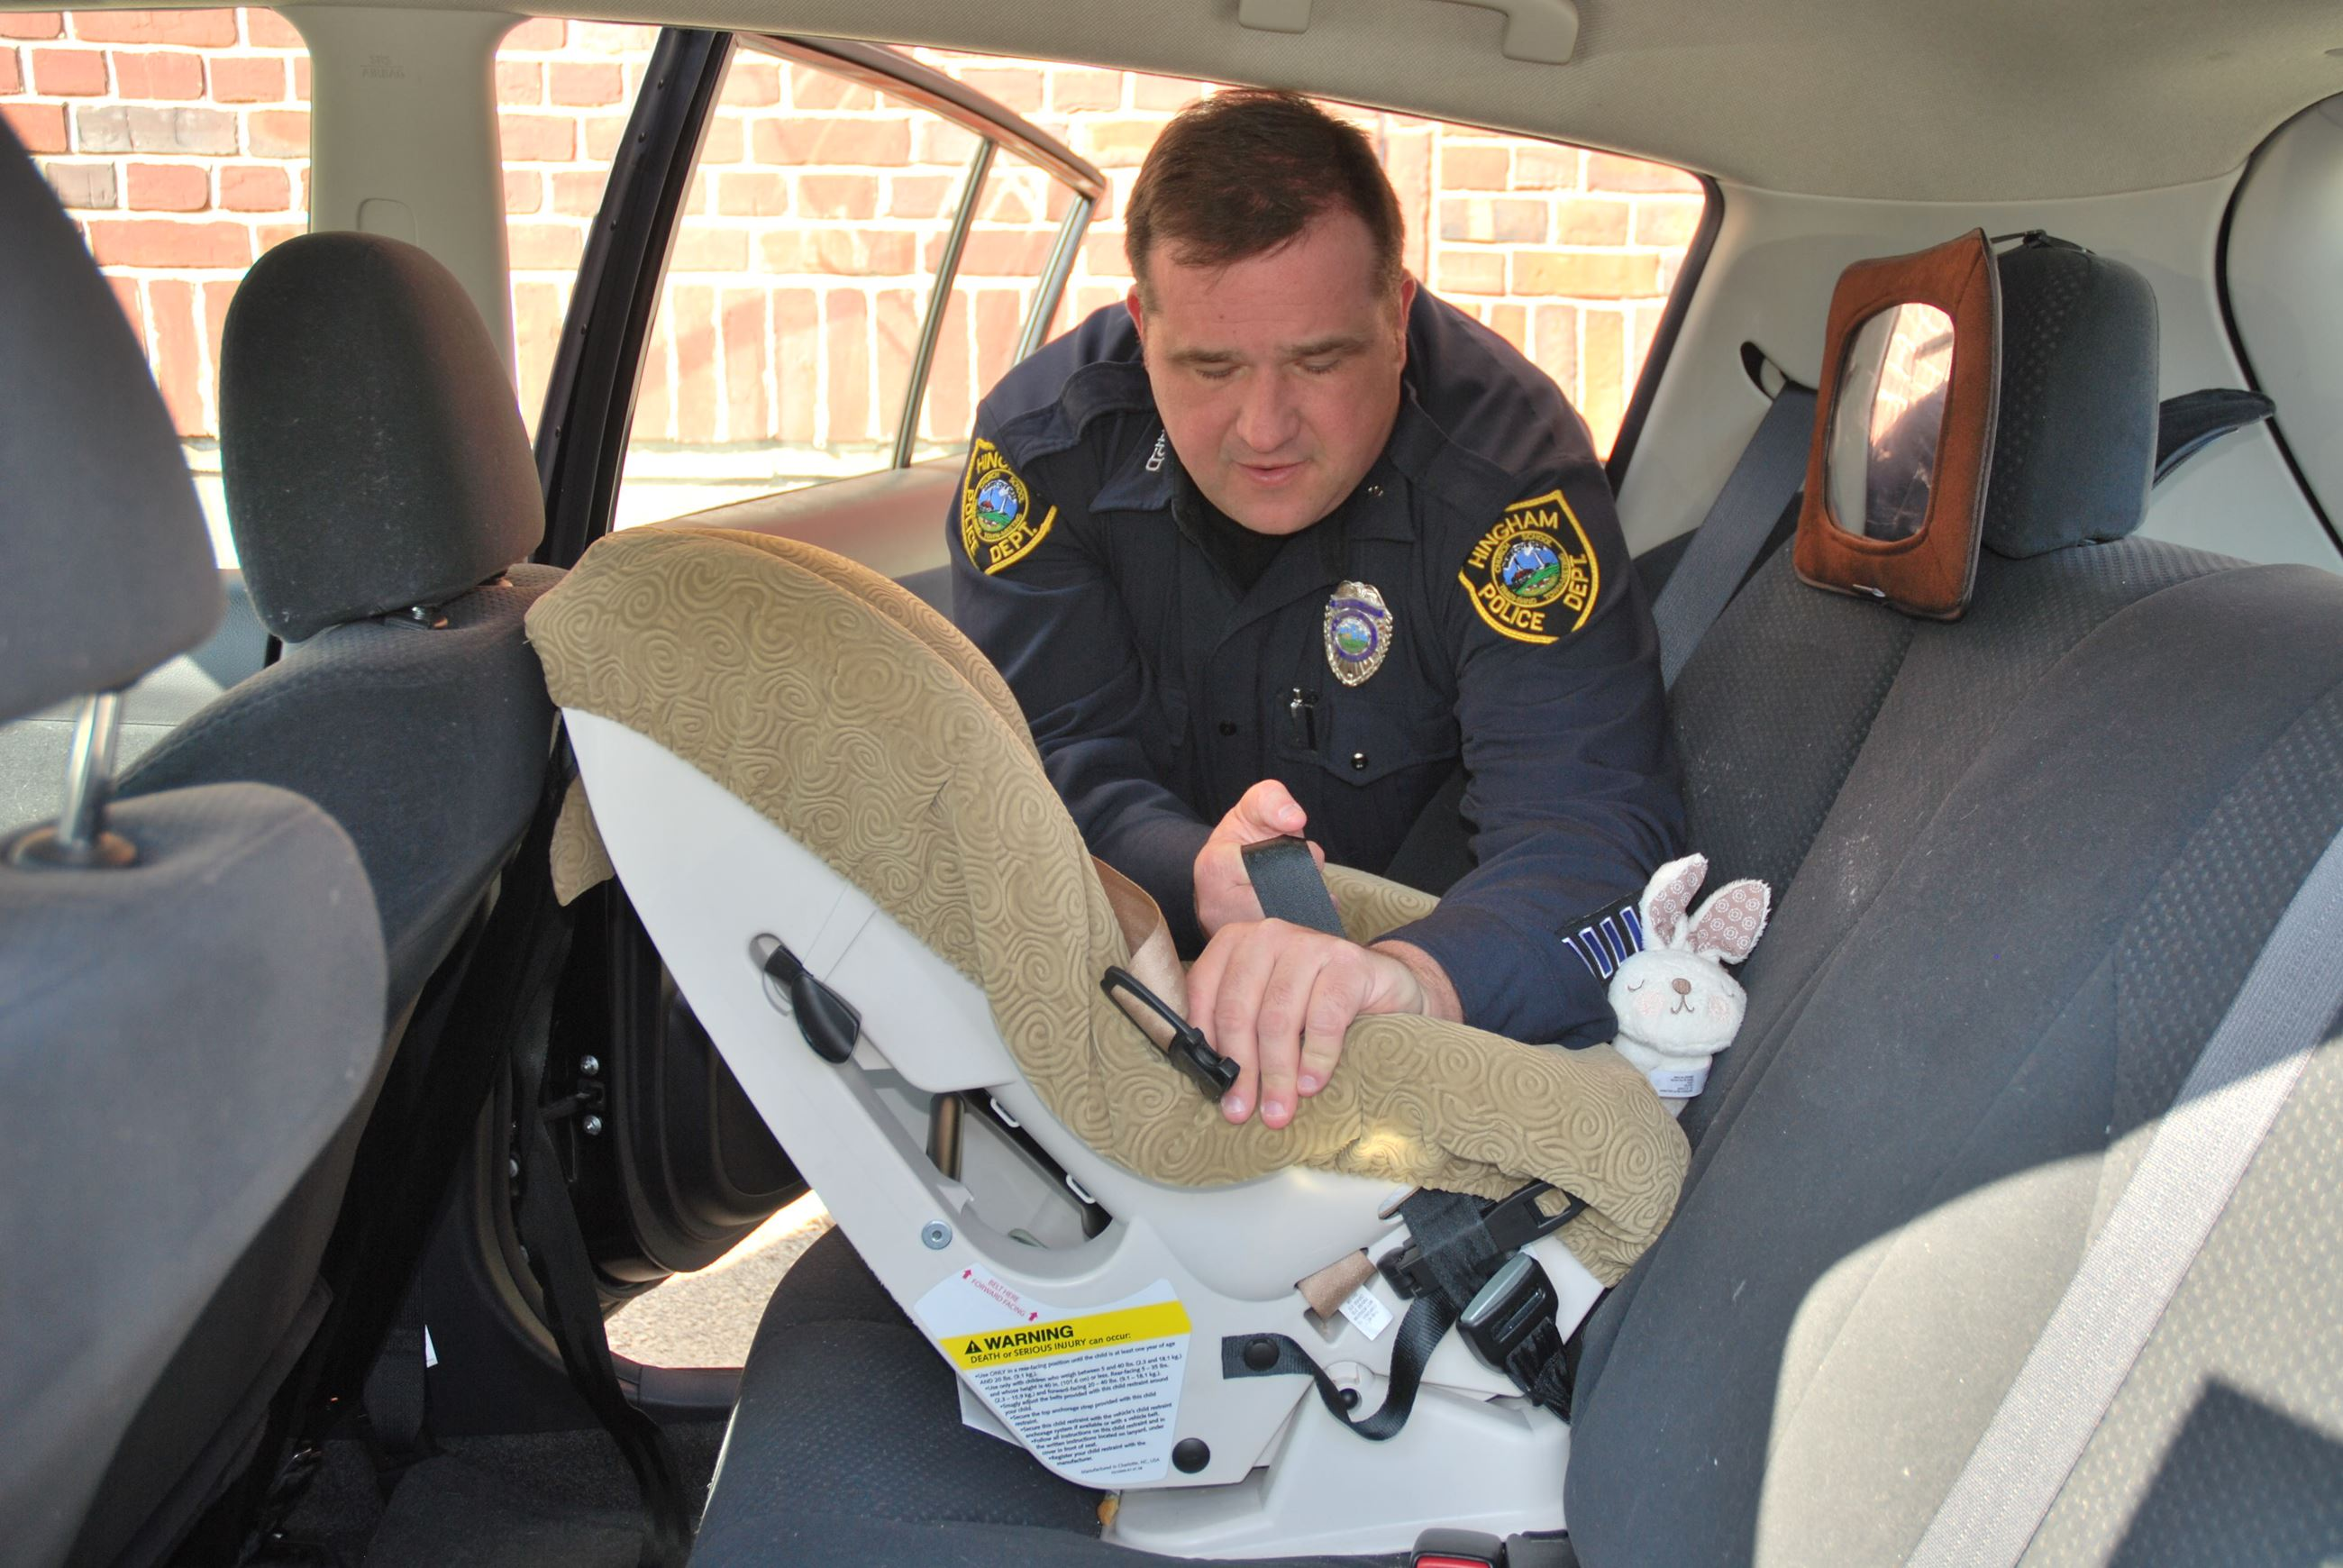 Child Car Seat Installation | Hingham Police Department, MA